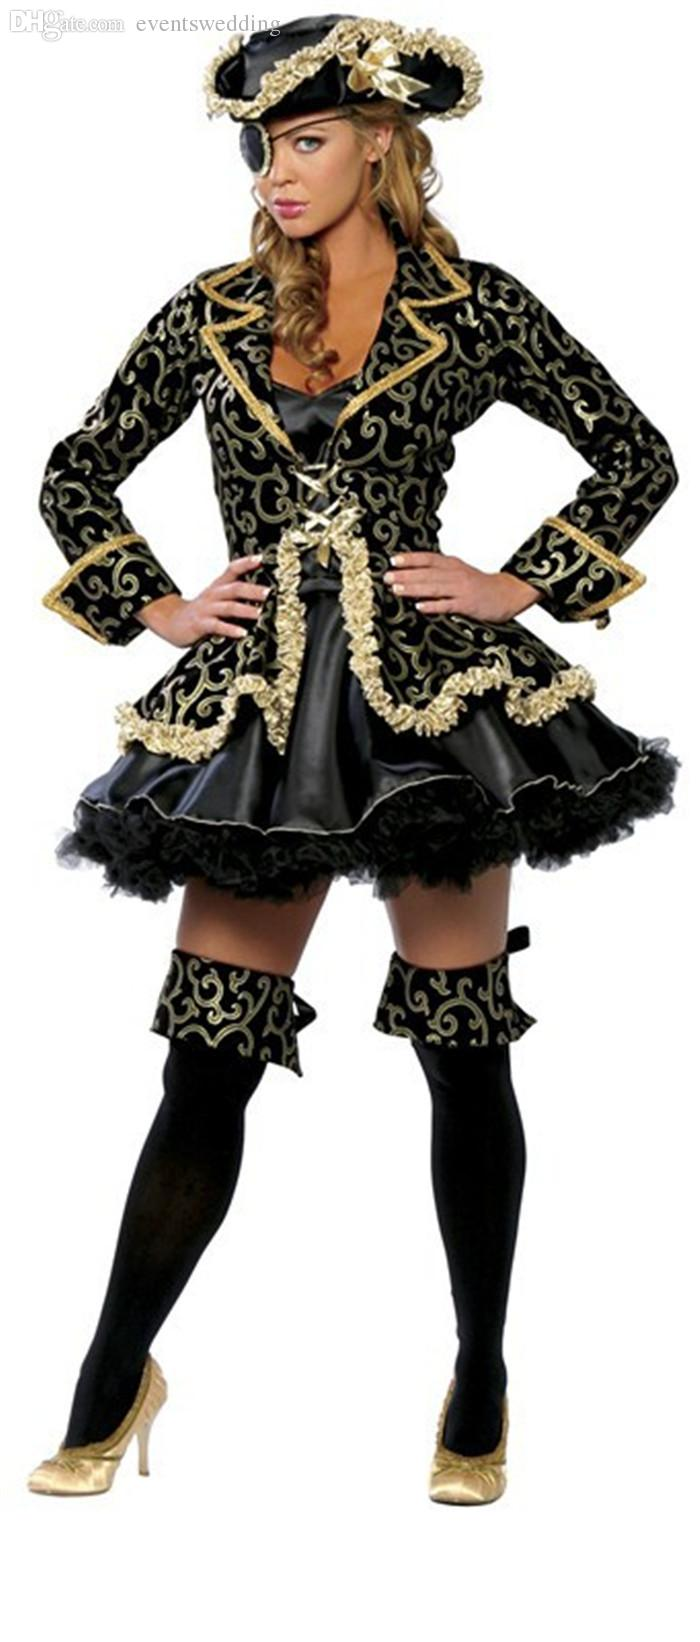 2018 wholesale 2016 hot sale high quality women cosplay black skirt gold sexy pirate costume halloween costume with hat plus size m xl from eventswedding